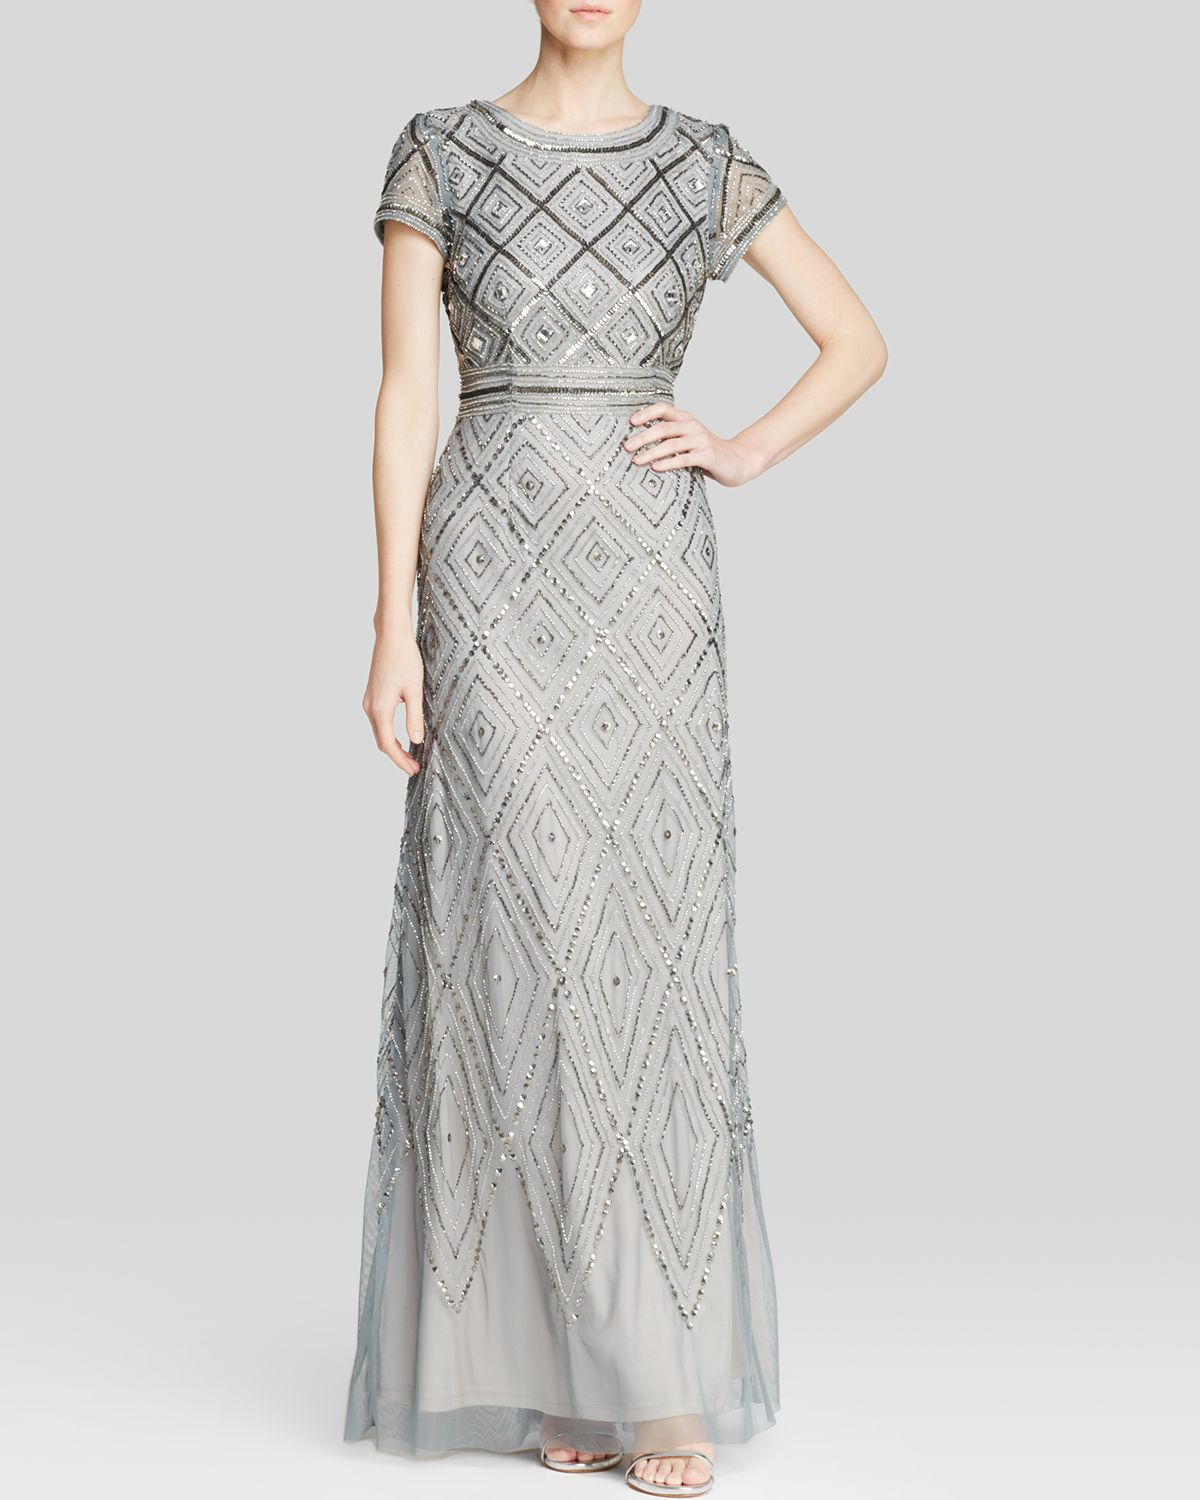 Lyst - Adrianna Papell Gown - Short Sleeve Geometric Beaded in Gray